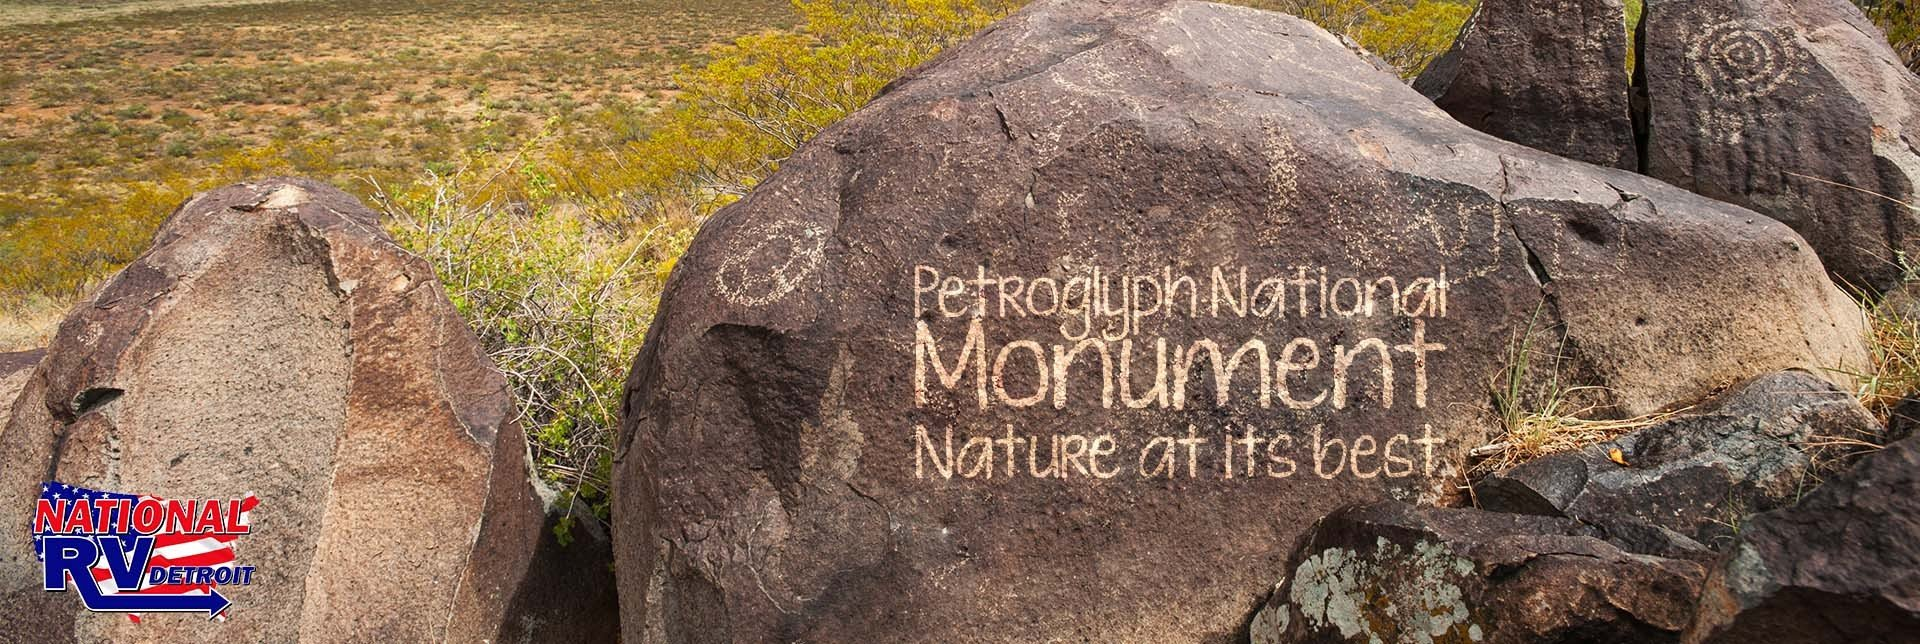 petroglyph national monument nature at its best